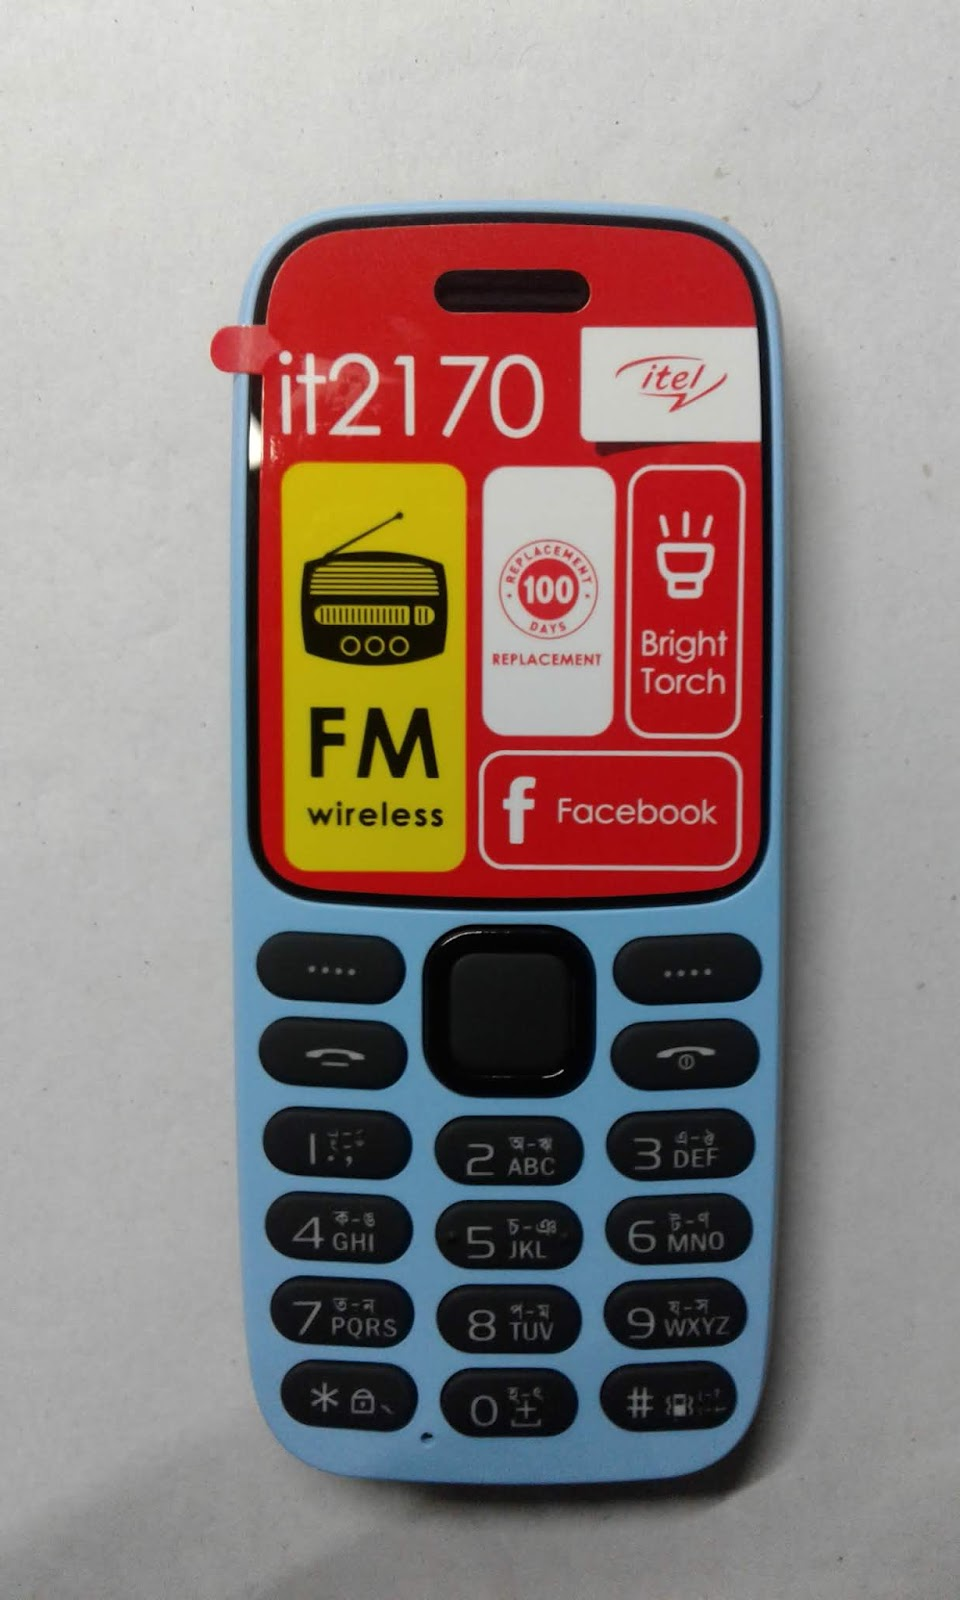 Itel it2170 sc6531e flash file download without password - waiting